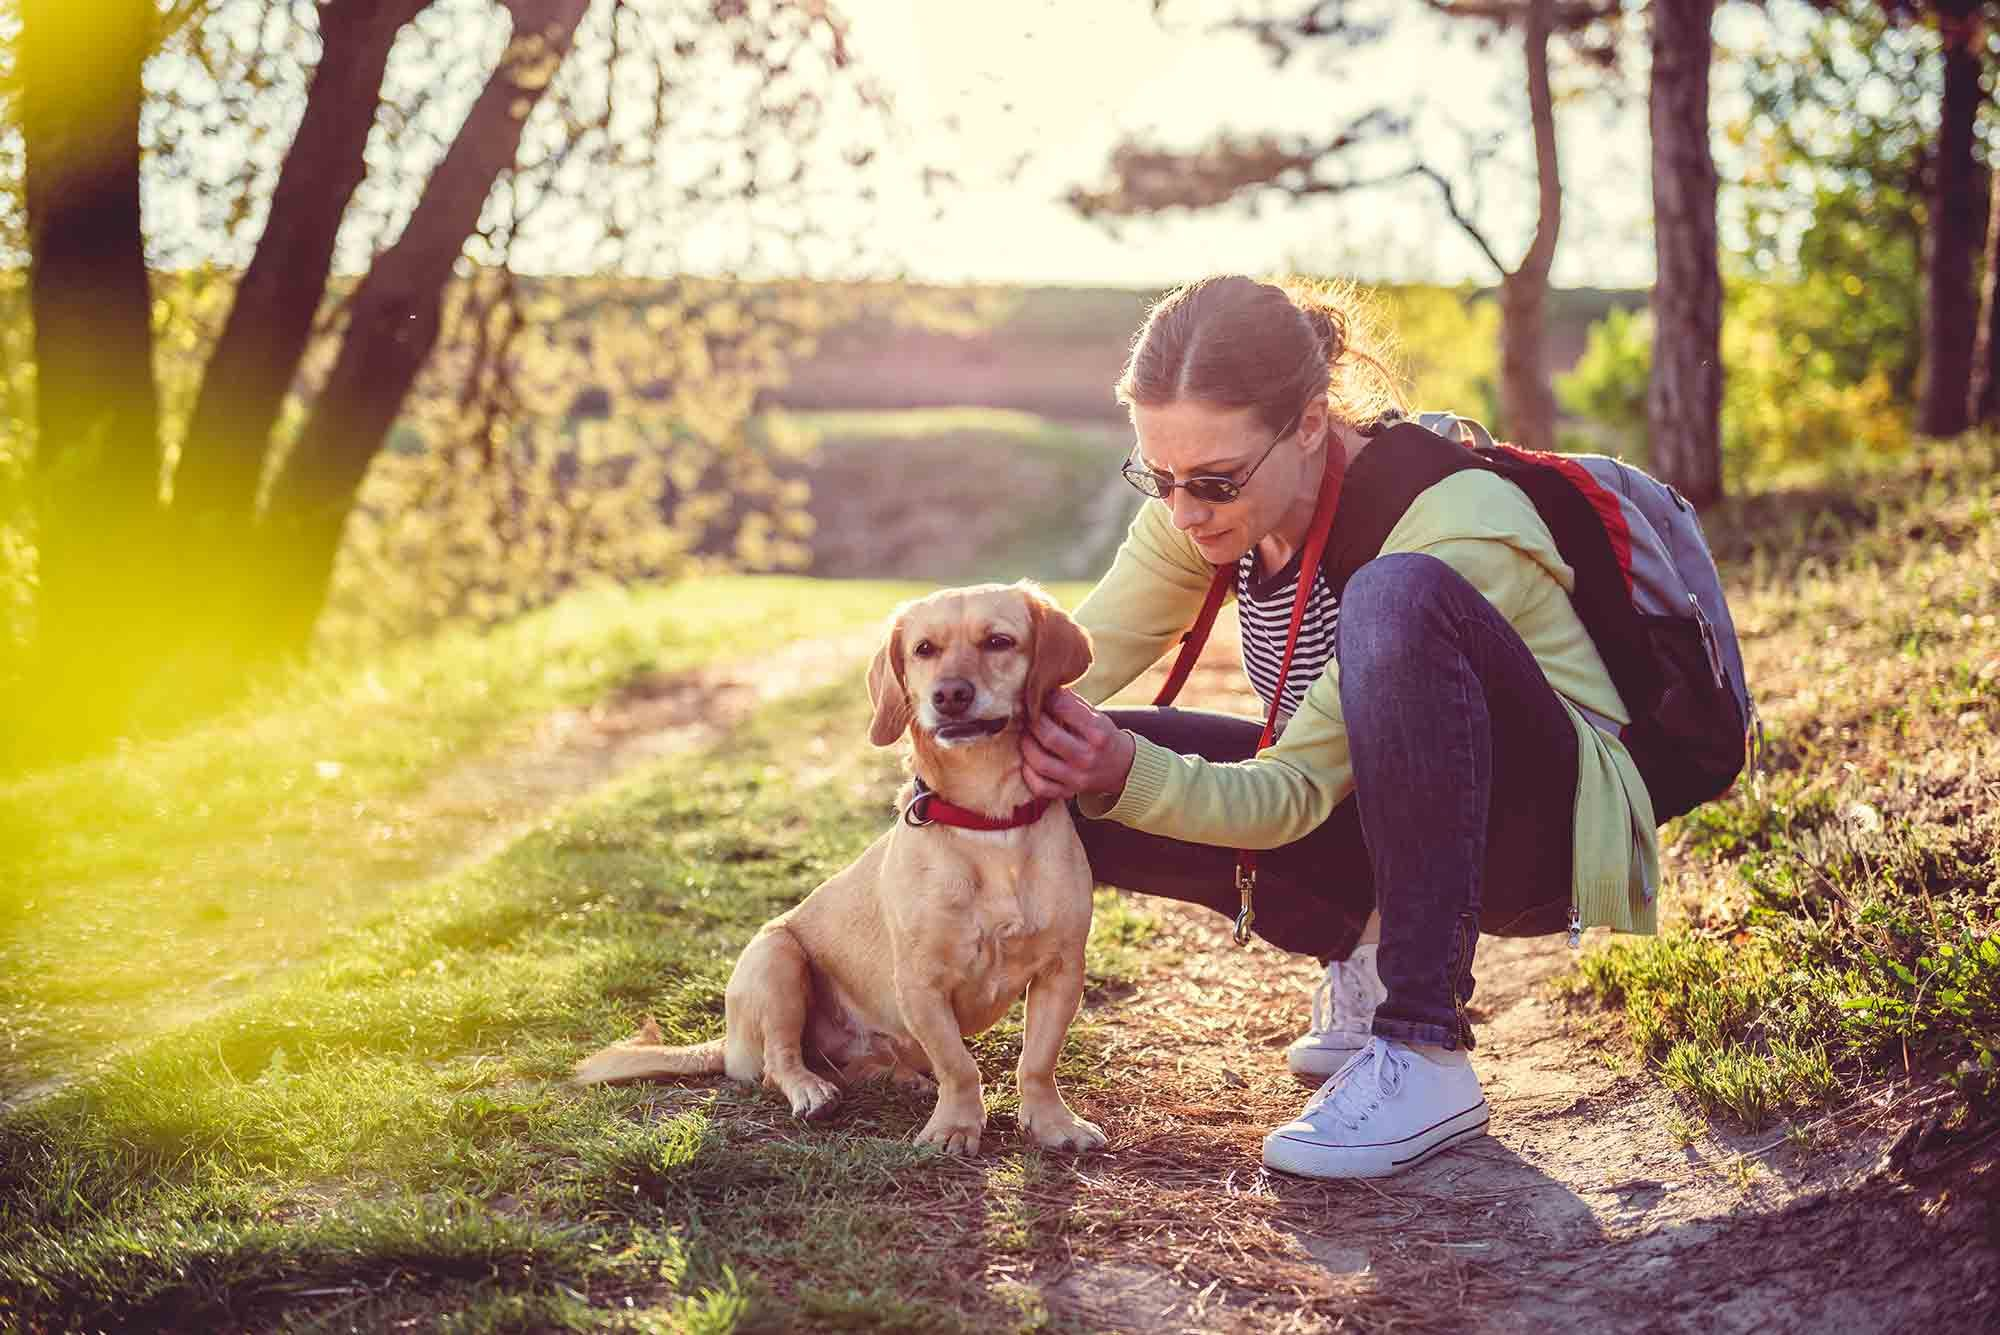 Ticks and pets don't mix when it comes to keeping your pet safe outdoors